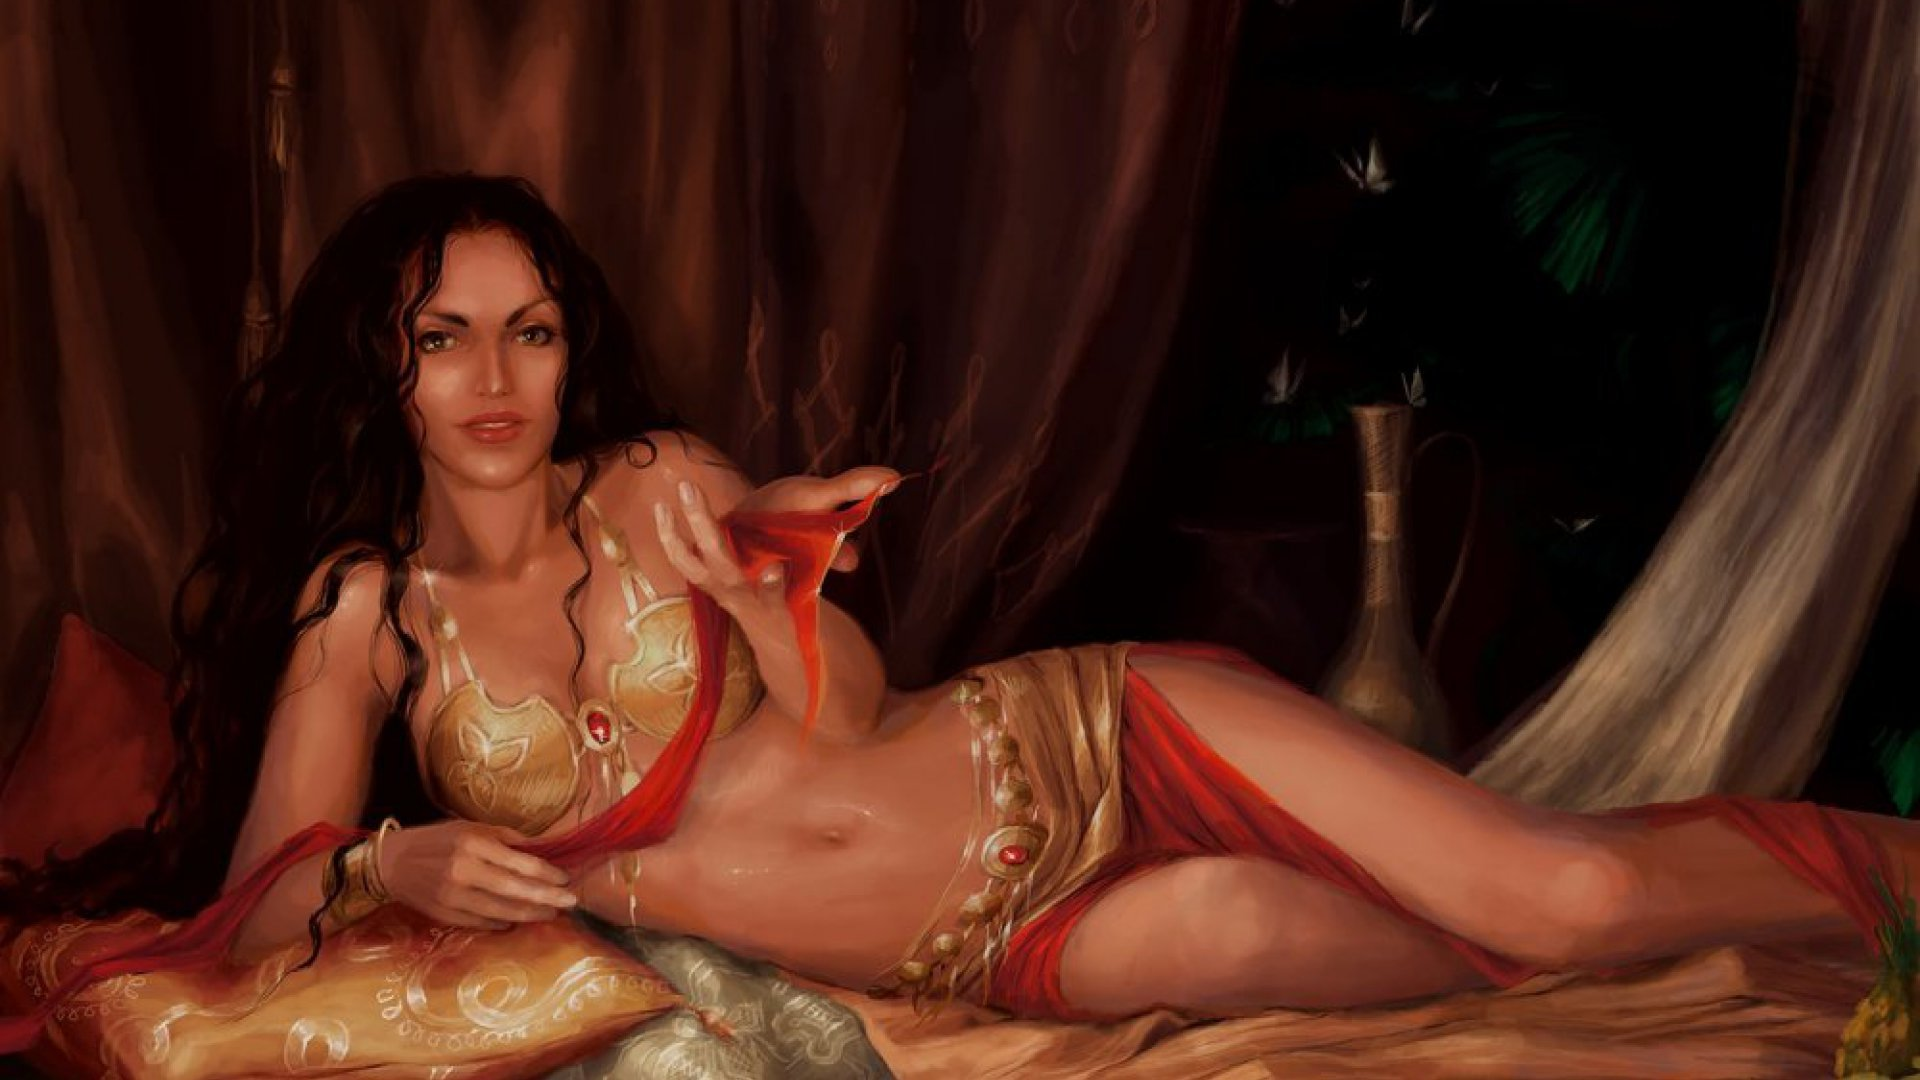 Harem 3d adult photos